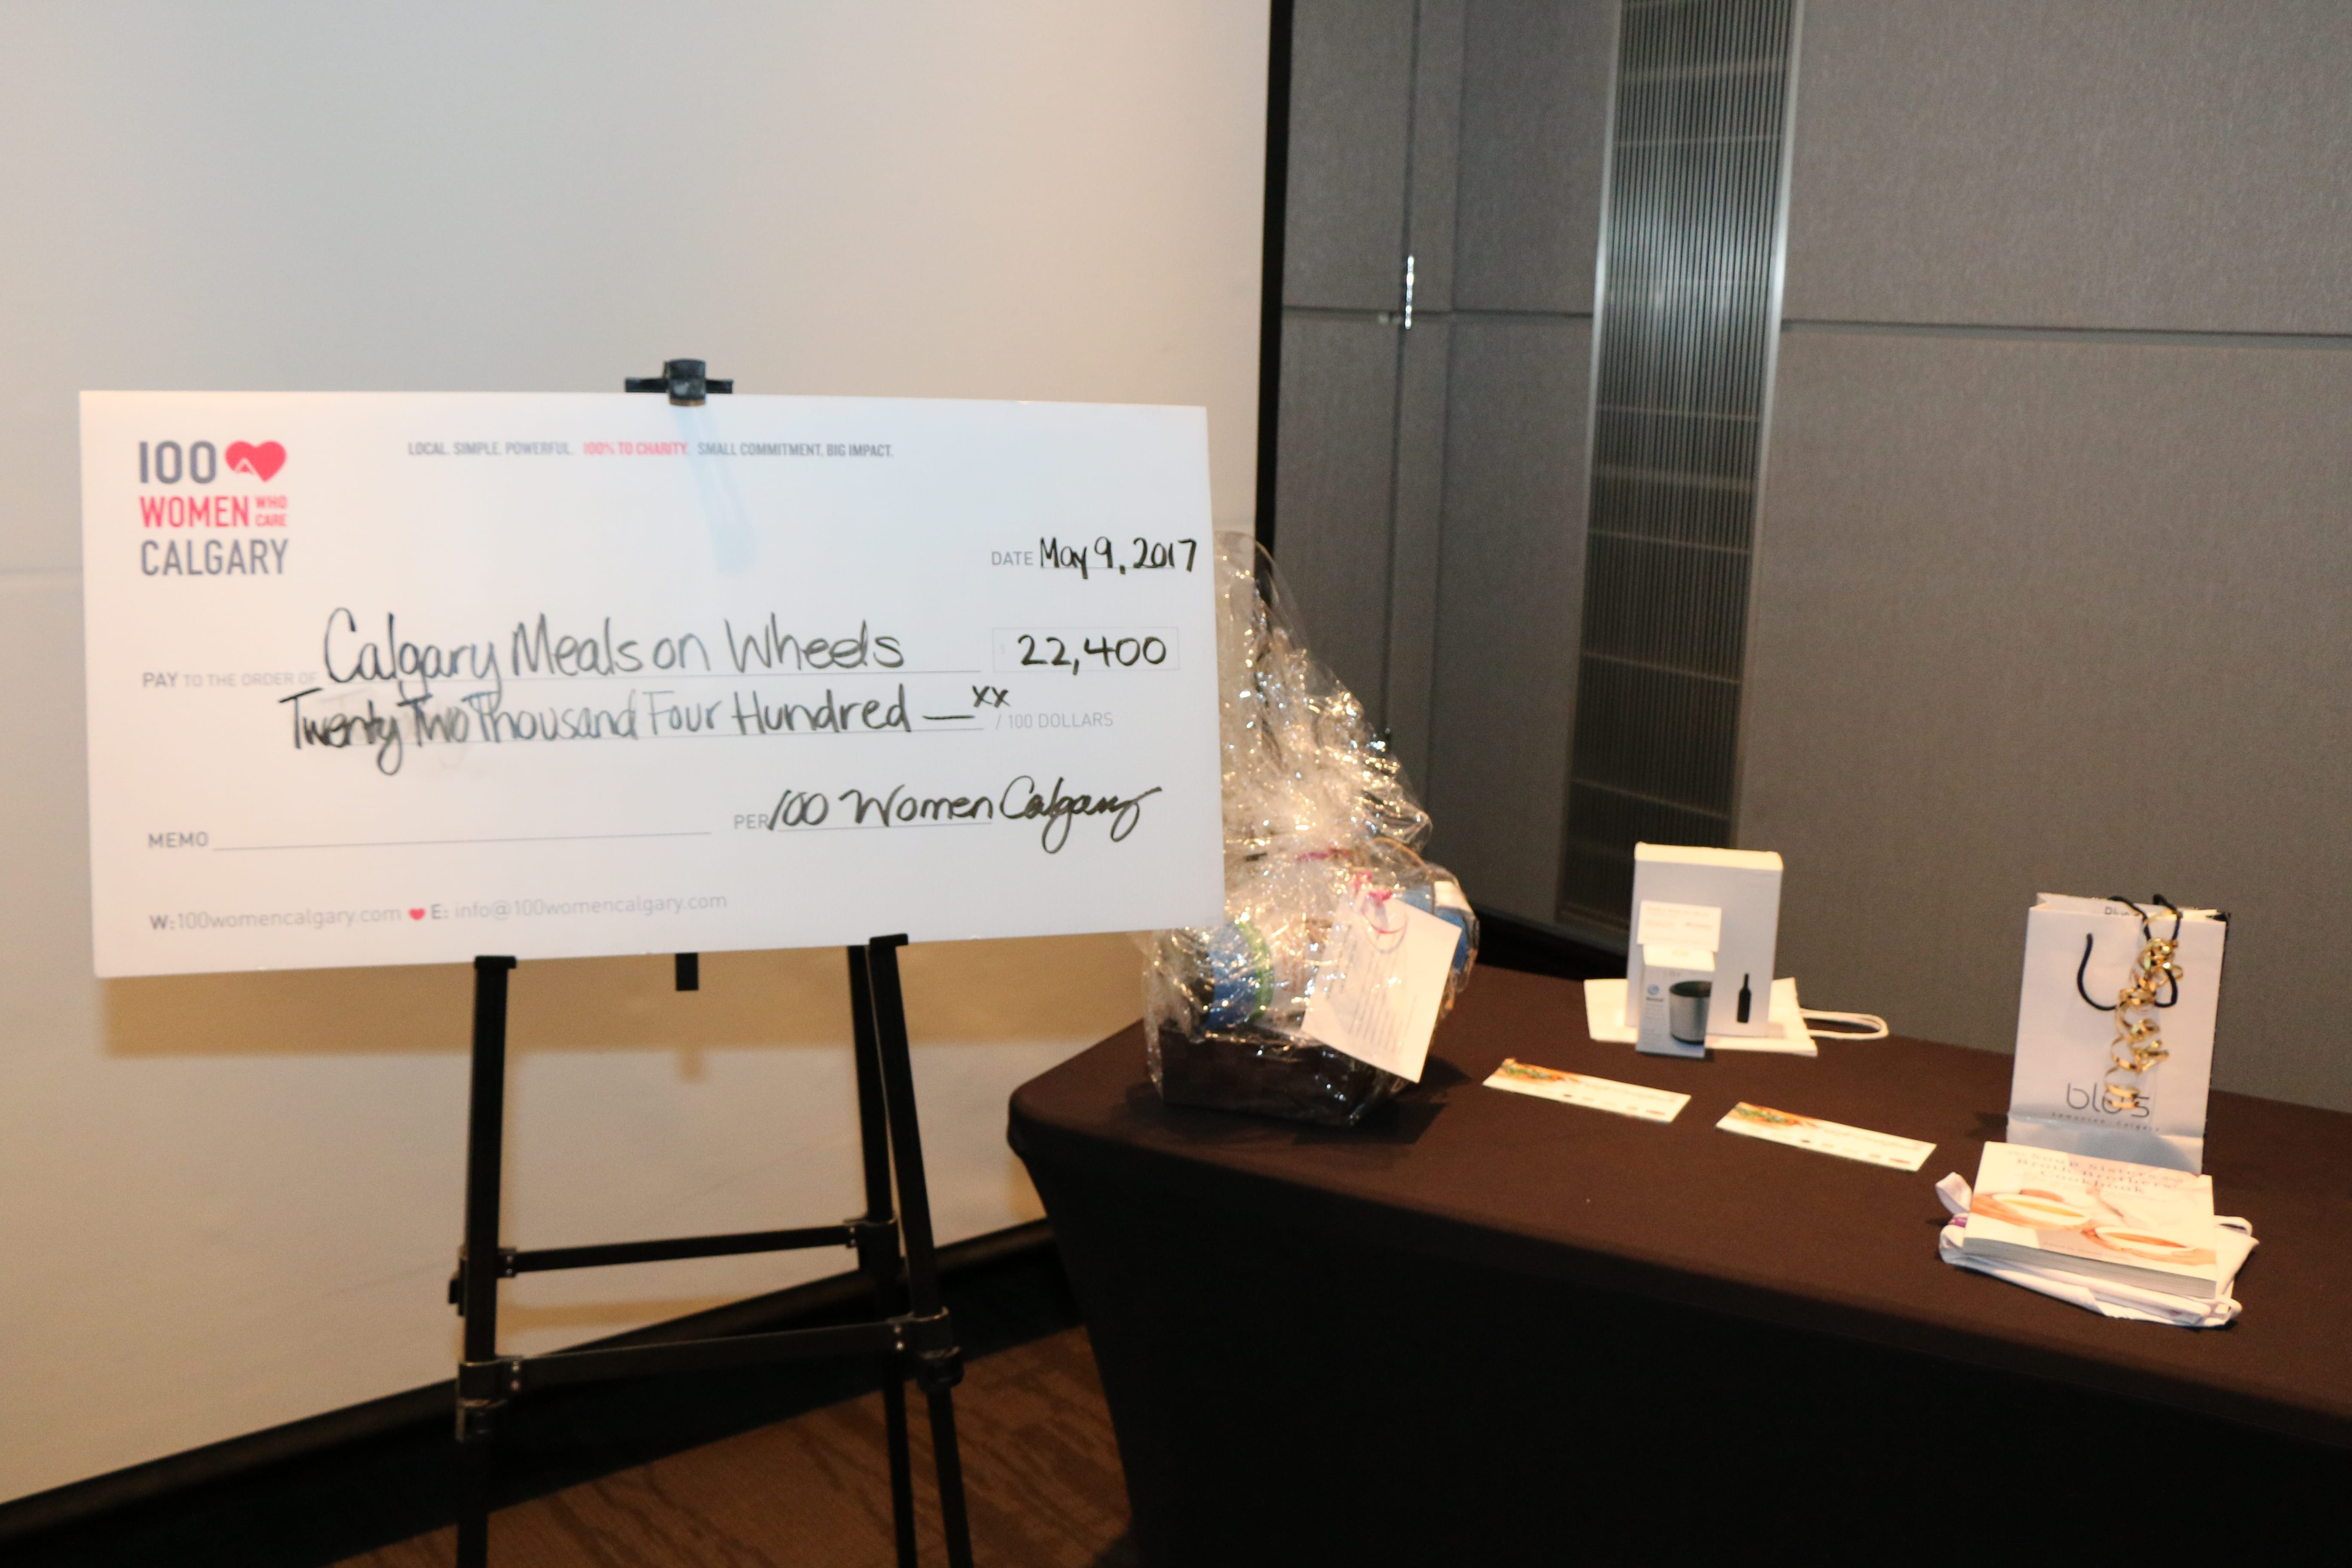 100 Women Who Care Calgary local charitable organization